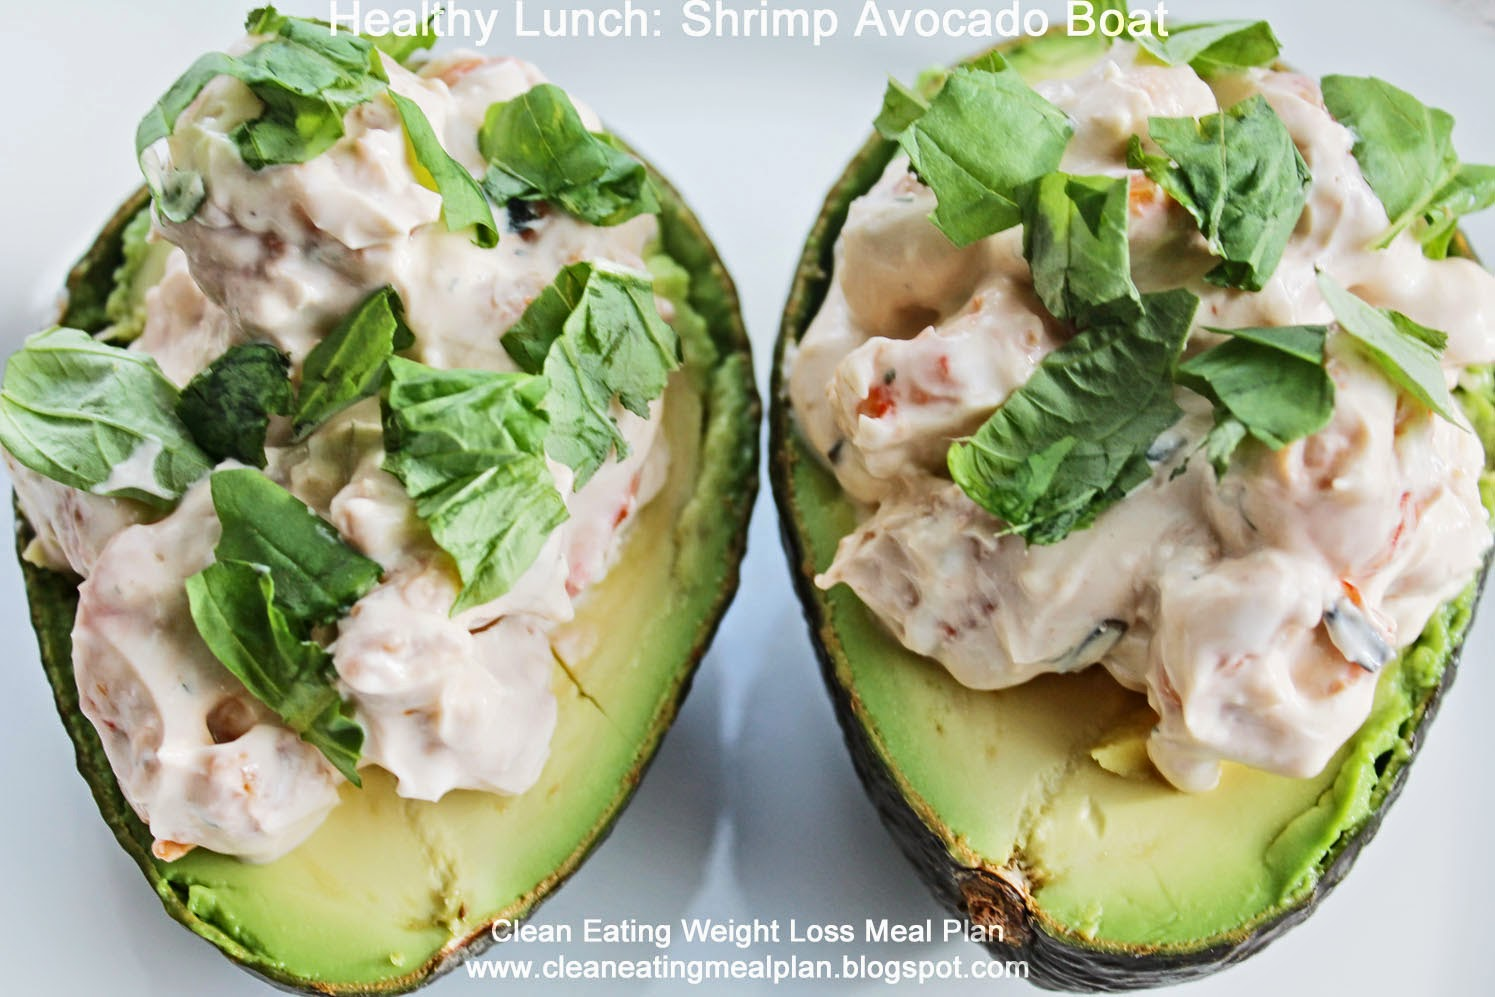 Healthy Lunch Shrimp Avocado Boat